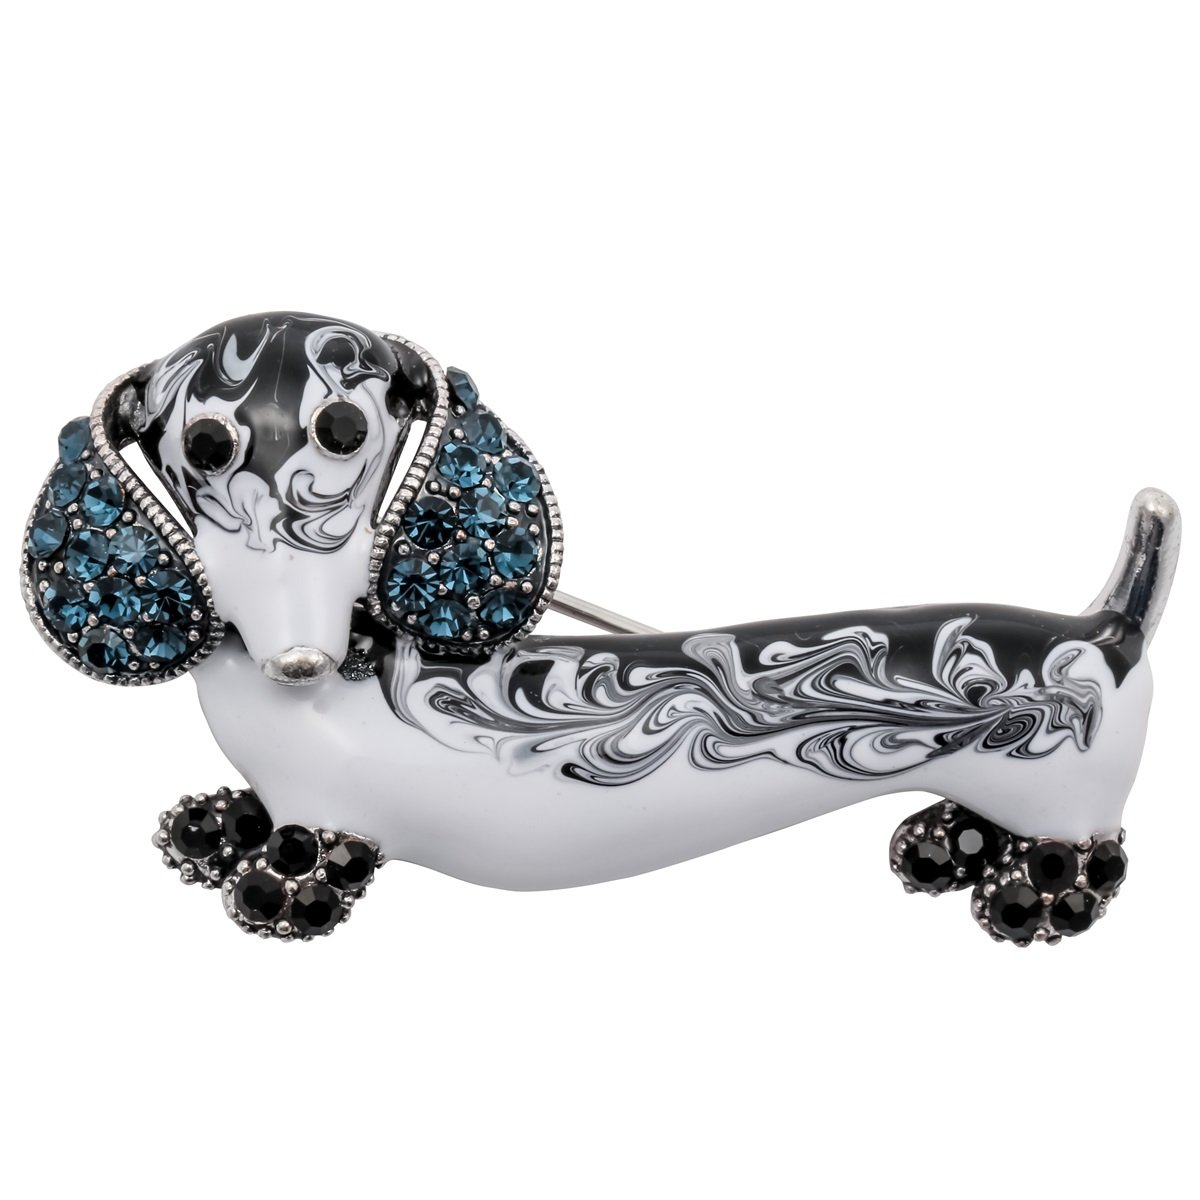 Szxc Jewelry Crystal Sparkly Dachshund Dog Puppy Animal Collection Accessories Brooch Pin Gift Women